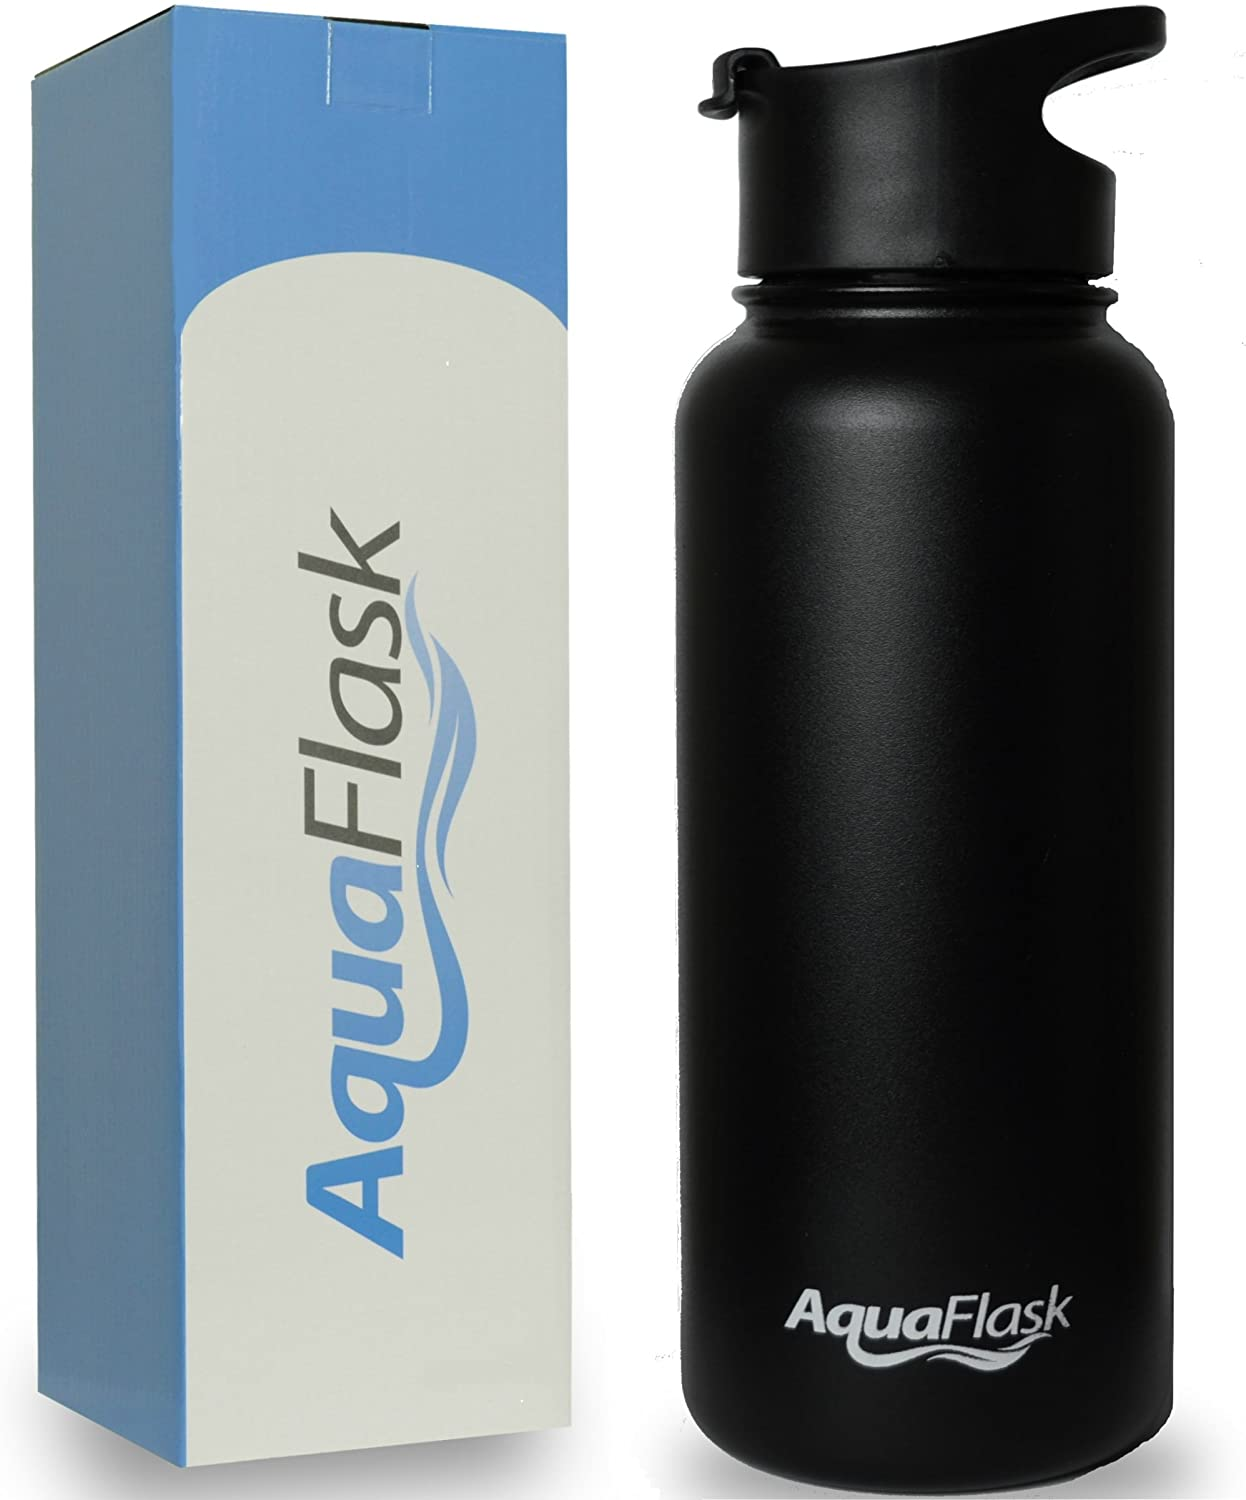 AquaFlask 32oz Vacuum Insulated Stainless Steel Water Bottle, Wide Mouth with Flip Top (32-Ounce)